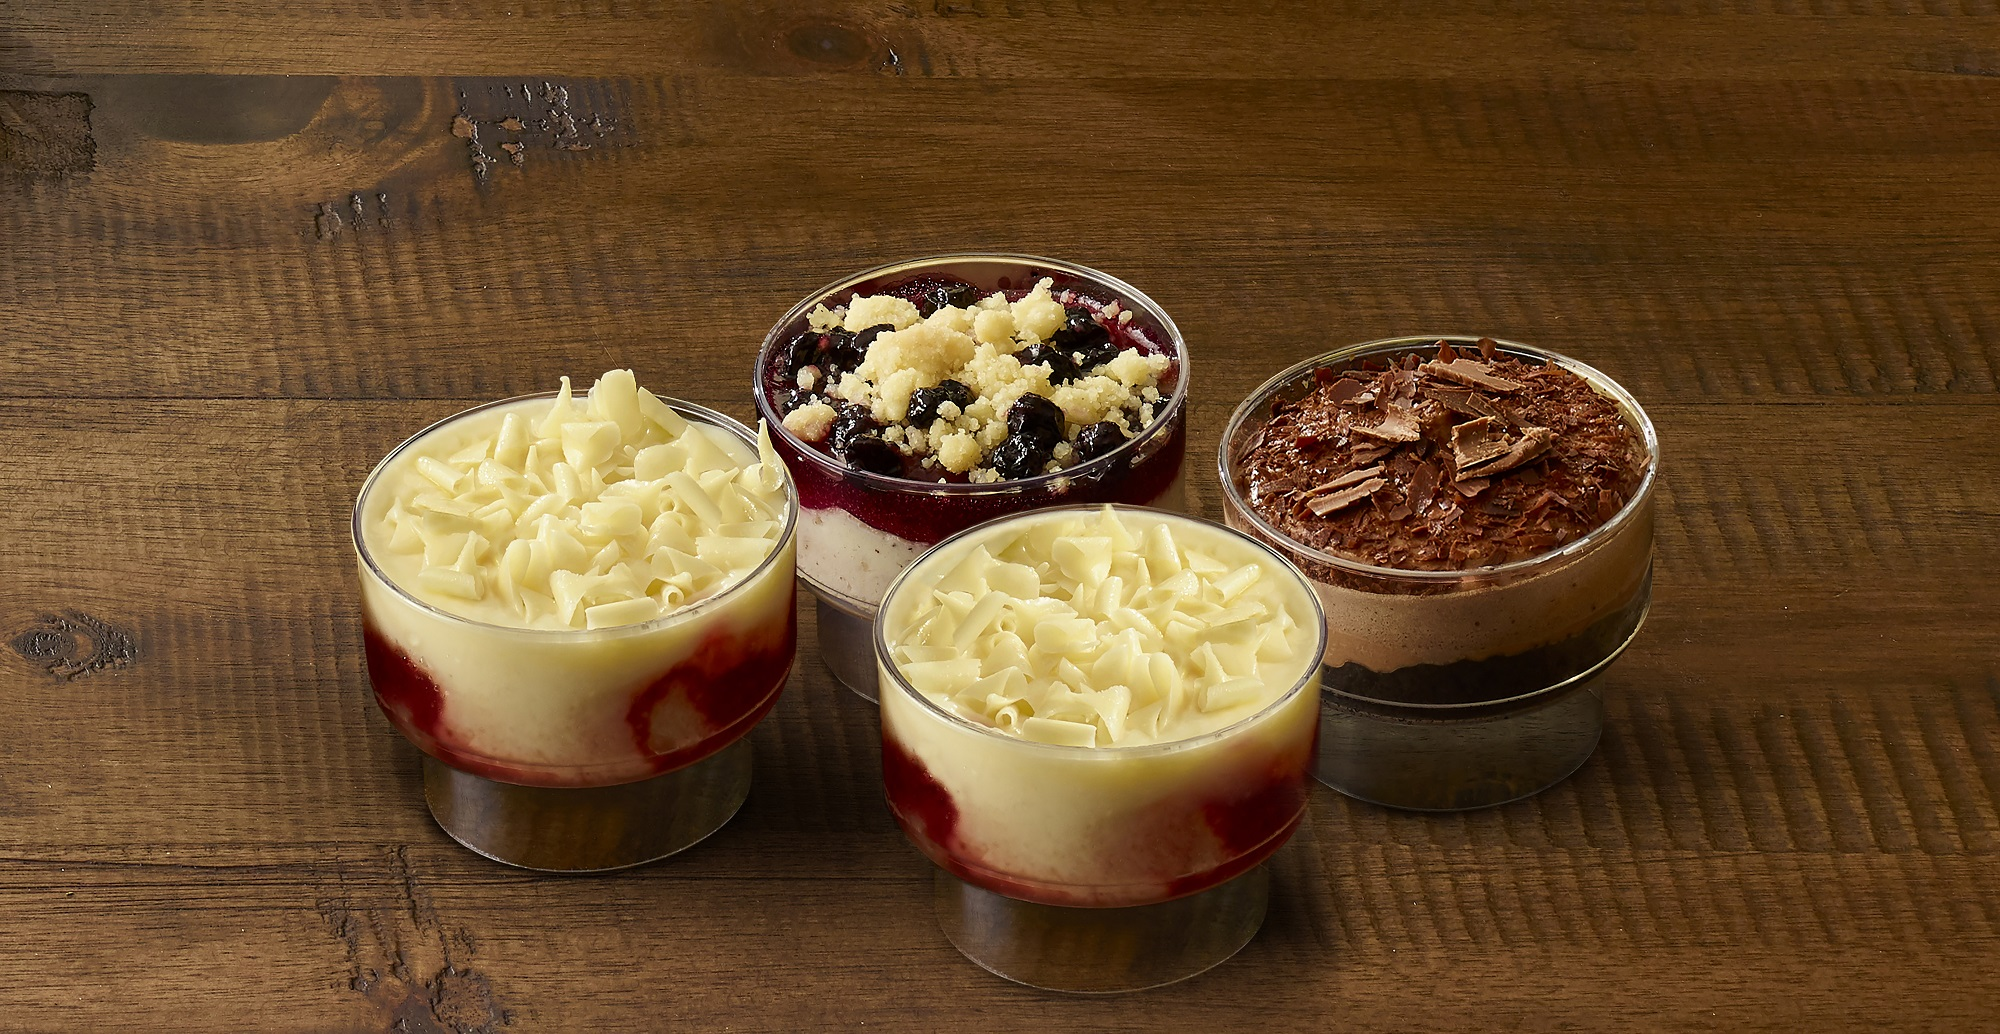 Olive Garden giving 4 free desserts to people born on Feb. 29 to make up for lost birthdays